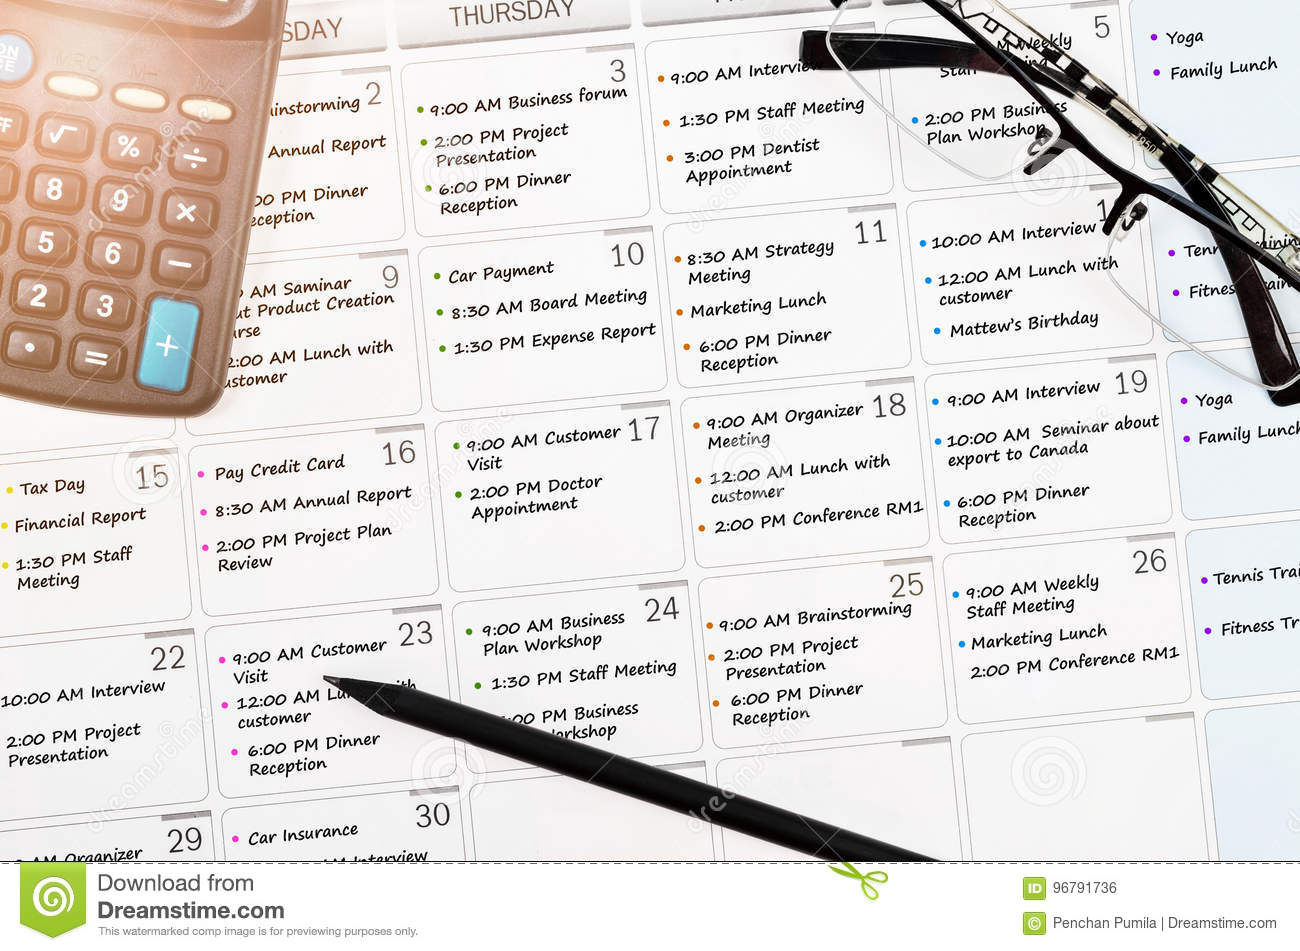 calendar appointment with busy day stock photo image of concepts